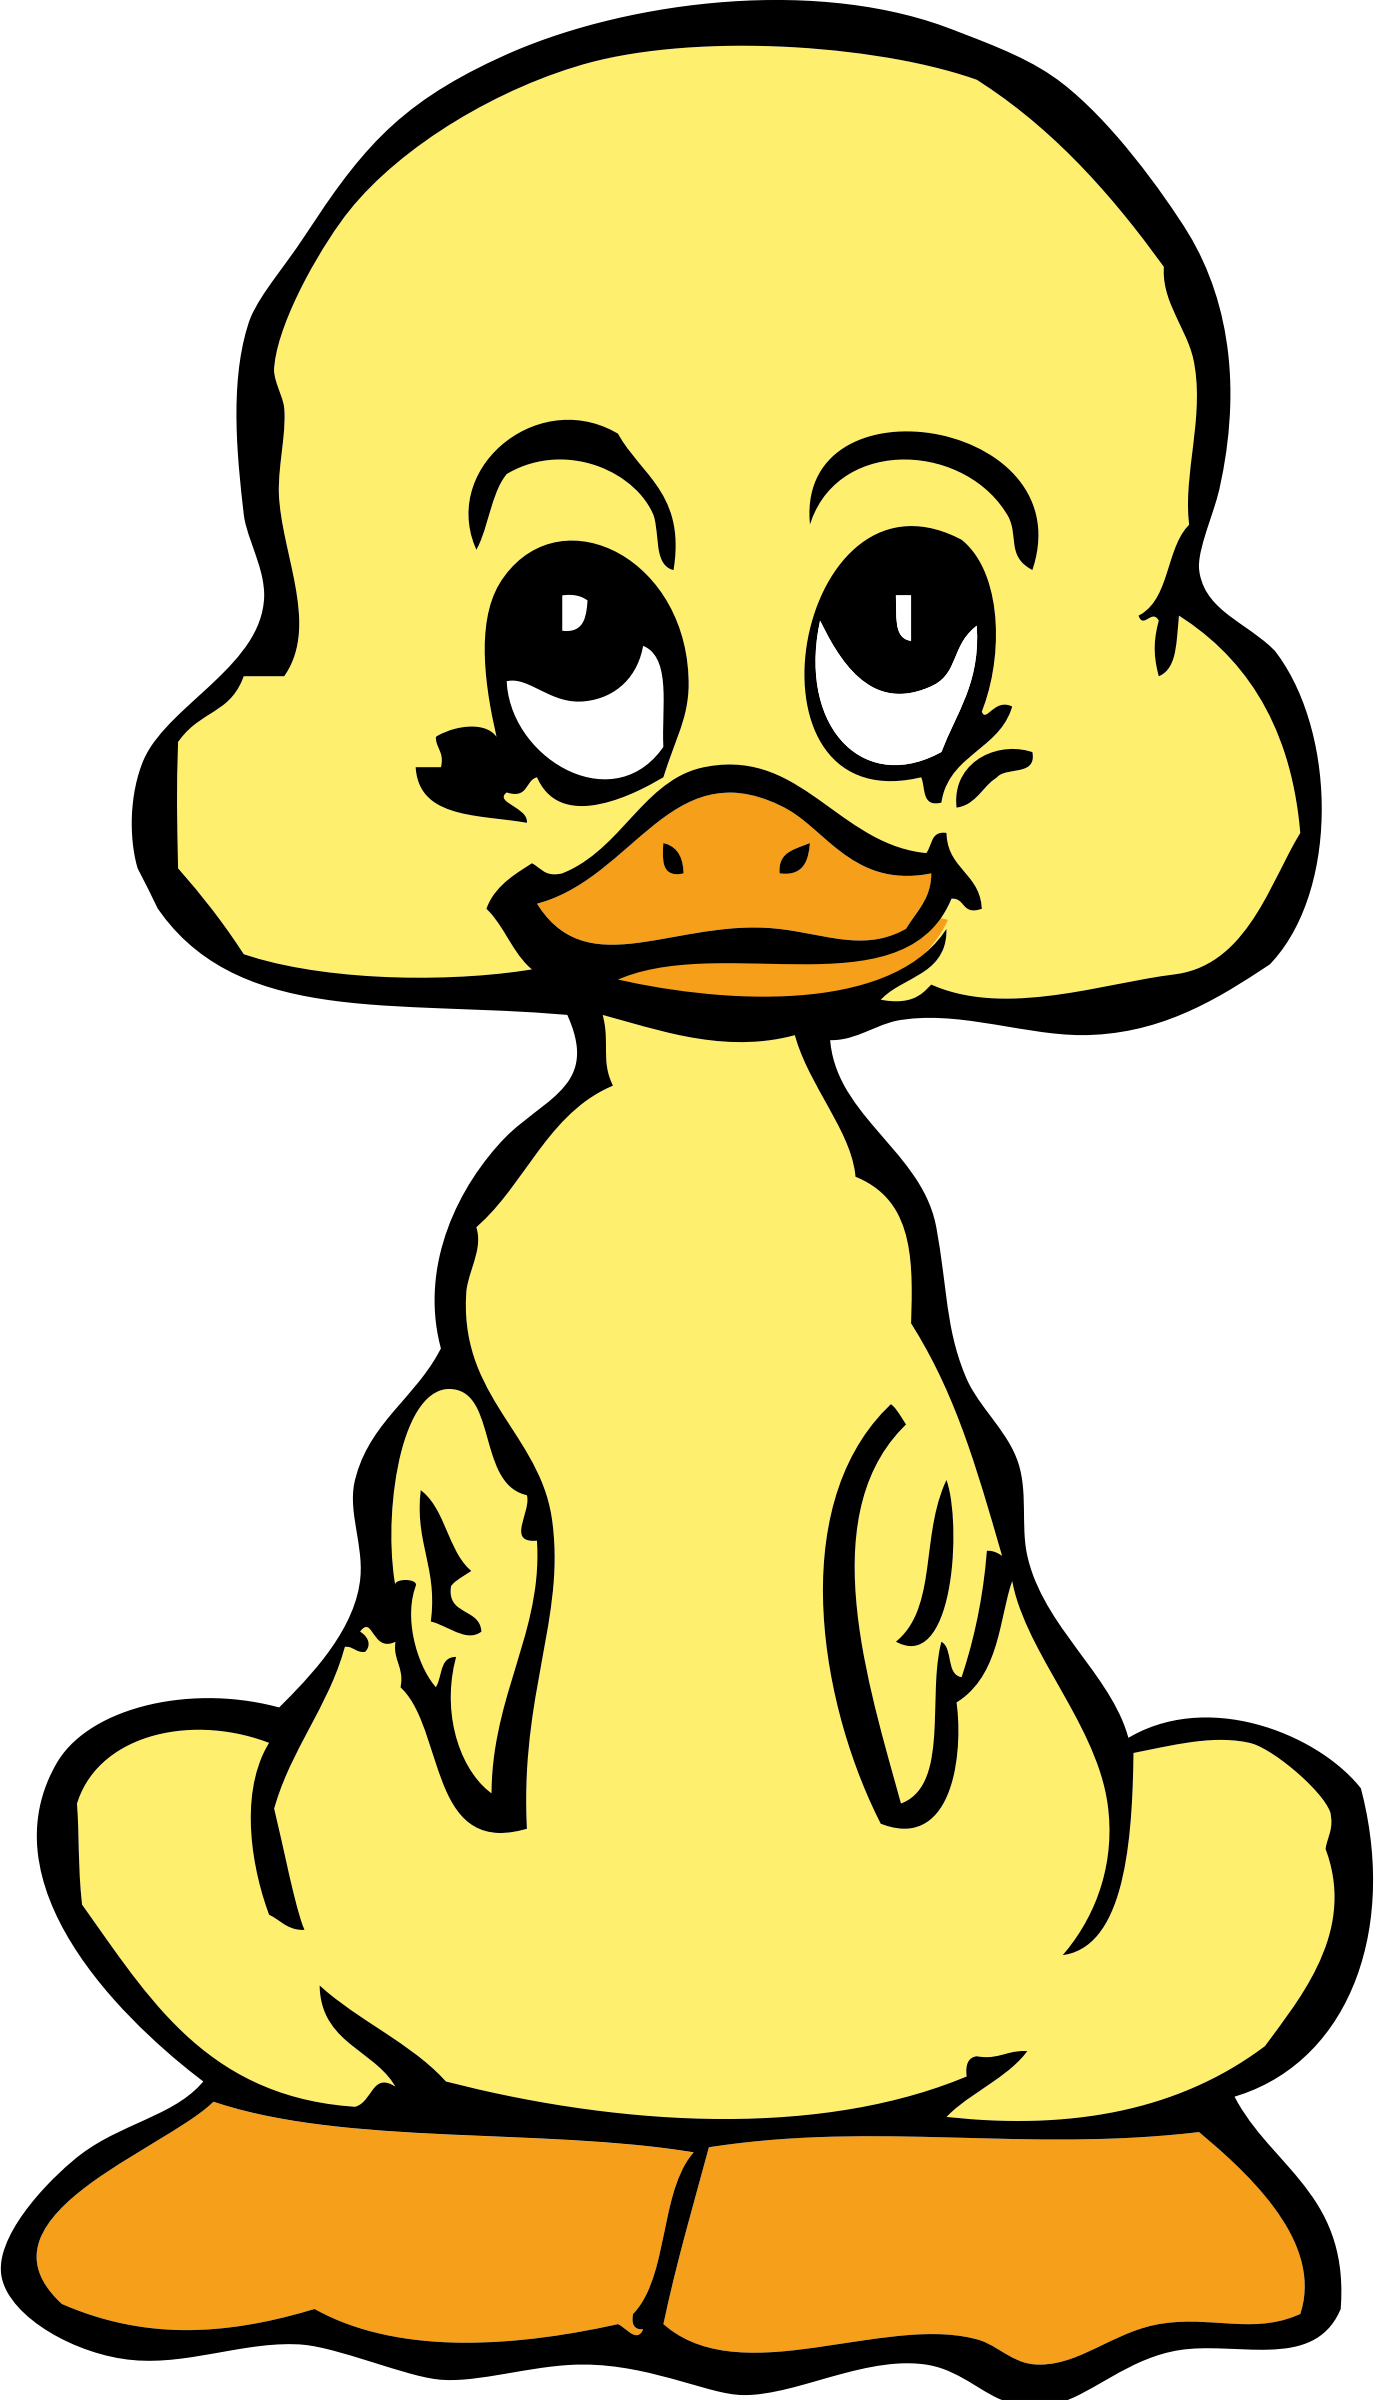 Big image png. Duck clipart baby duck image free stock